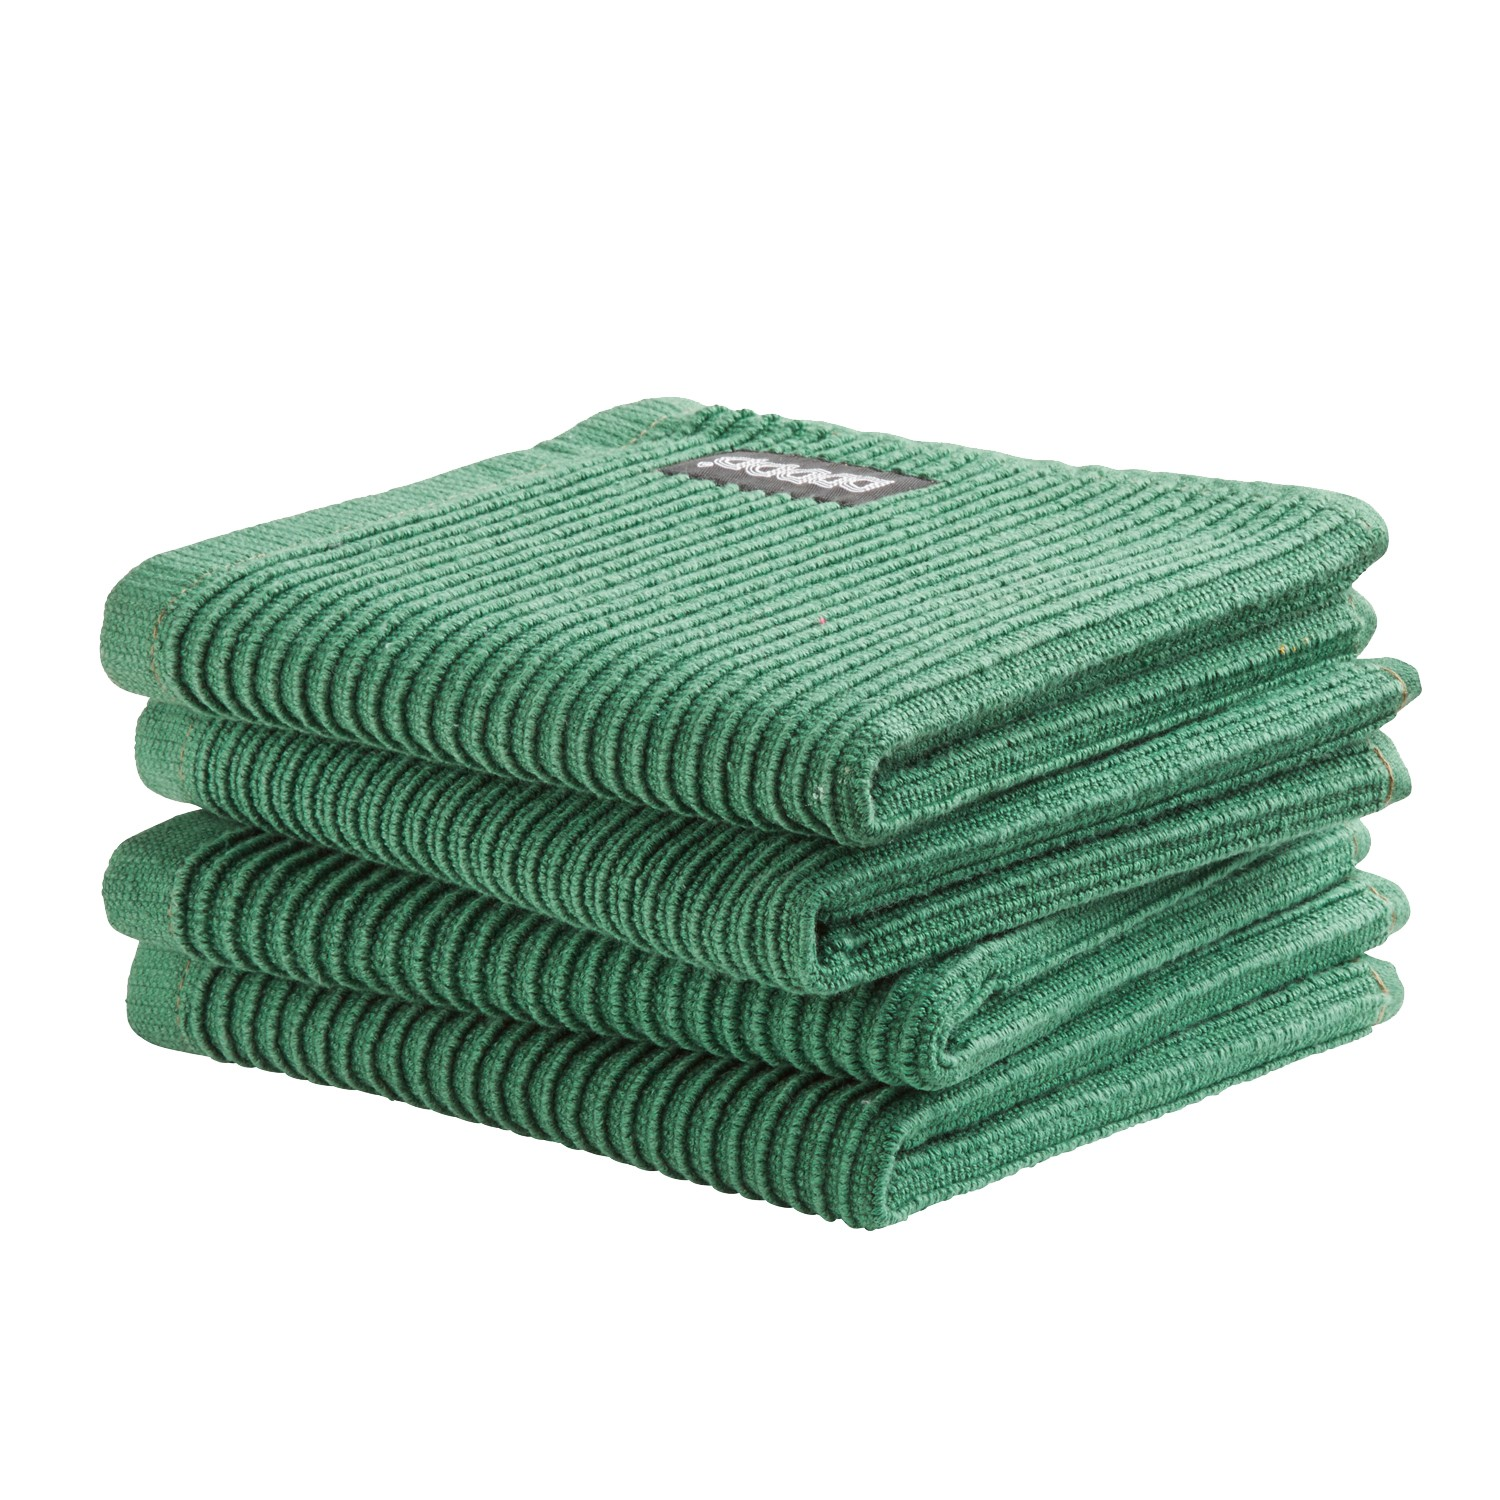 Vaatdoek Basic Clean | Classic green | 30 x 30 cm